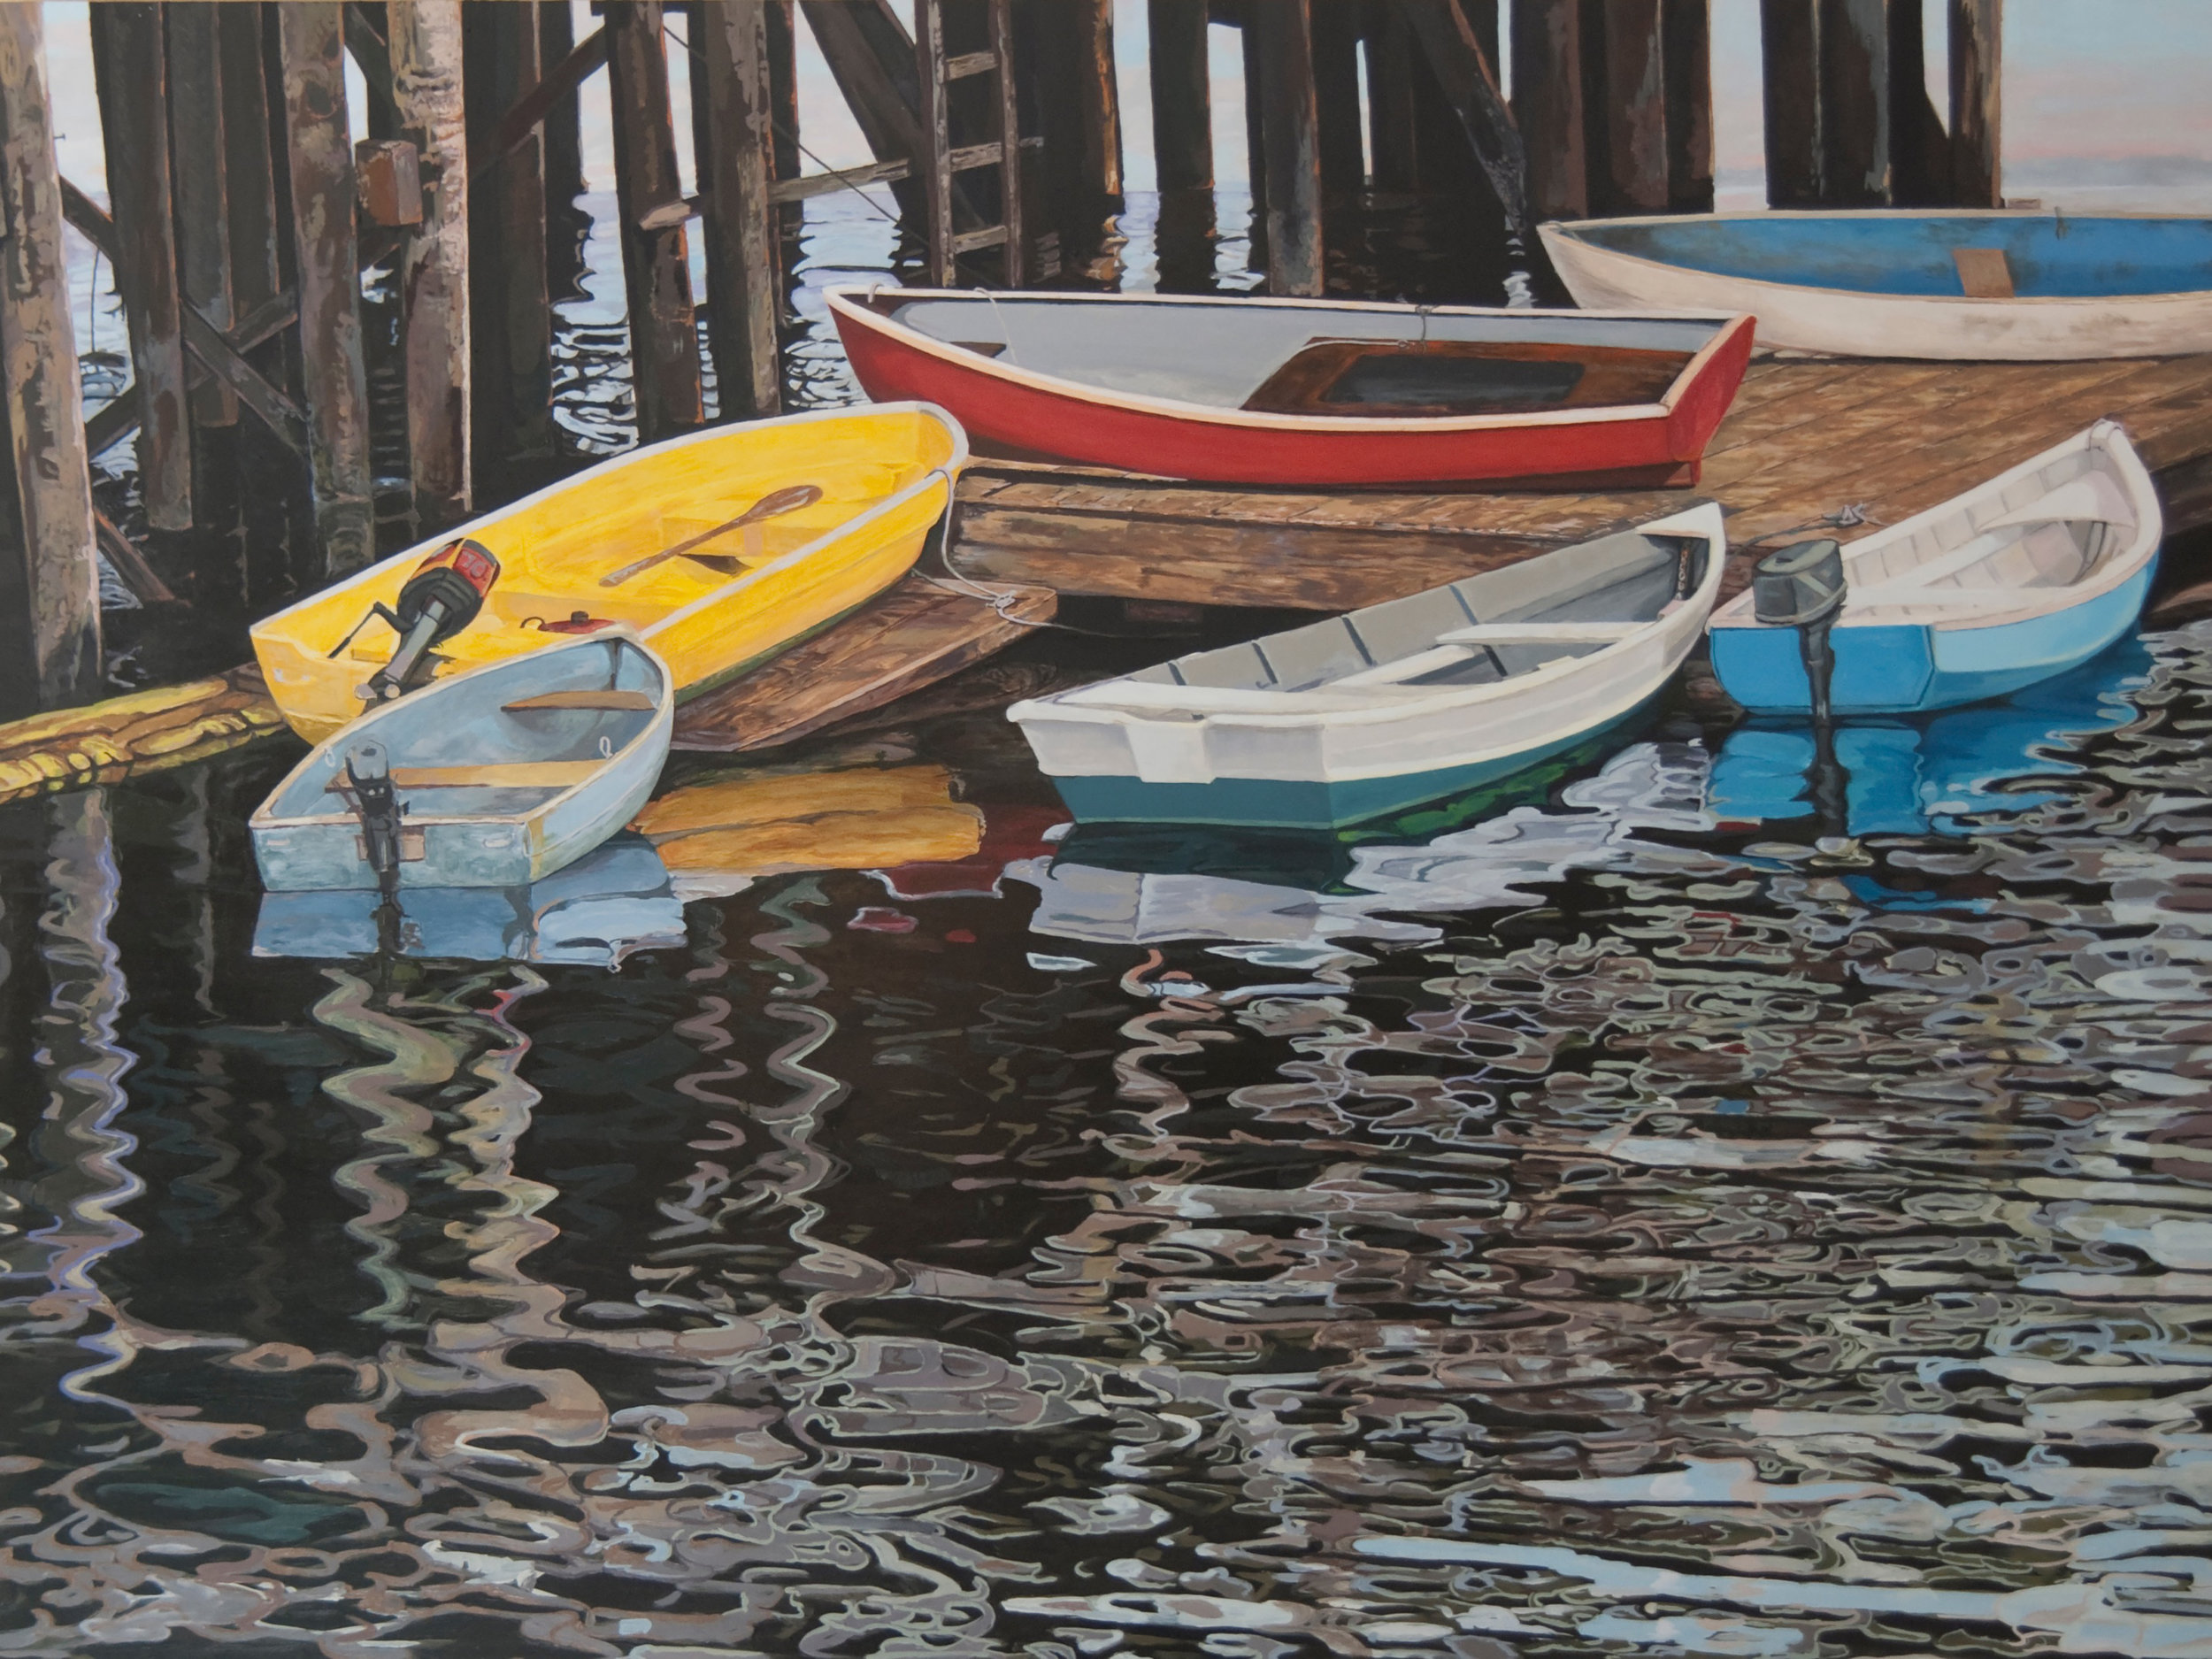 Southwest Harbor Dinghies  Oil on panel 30 x 40 inches, available